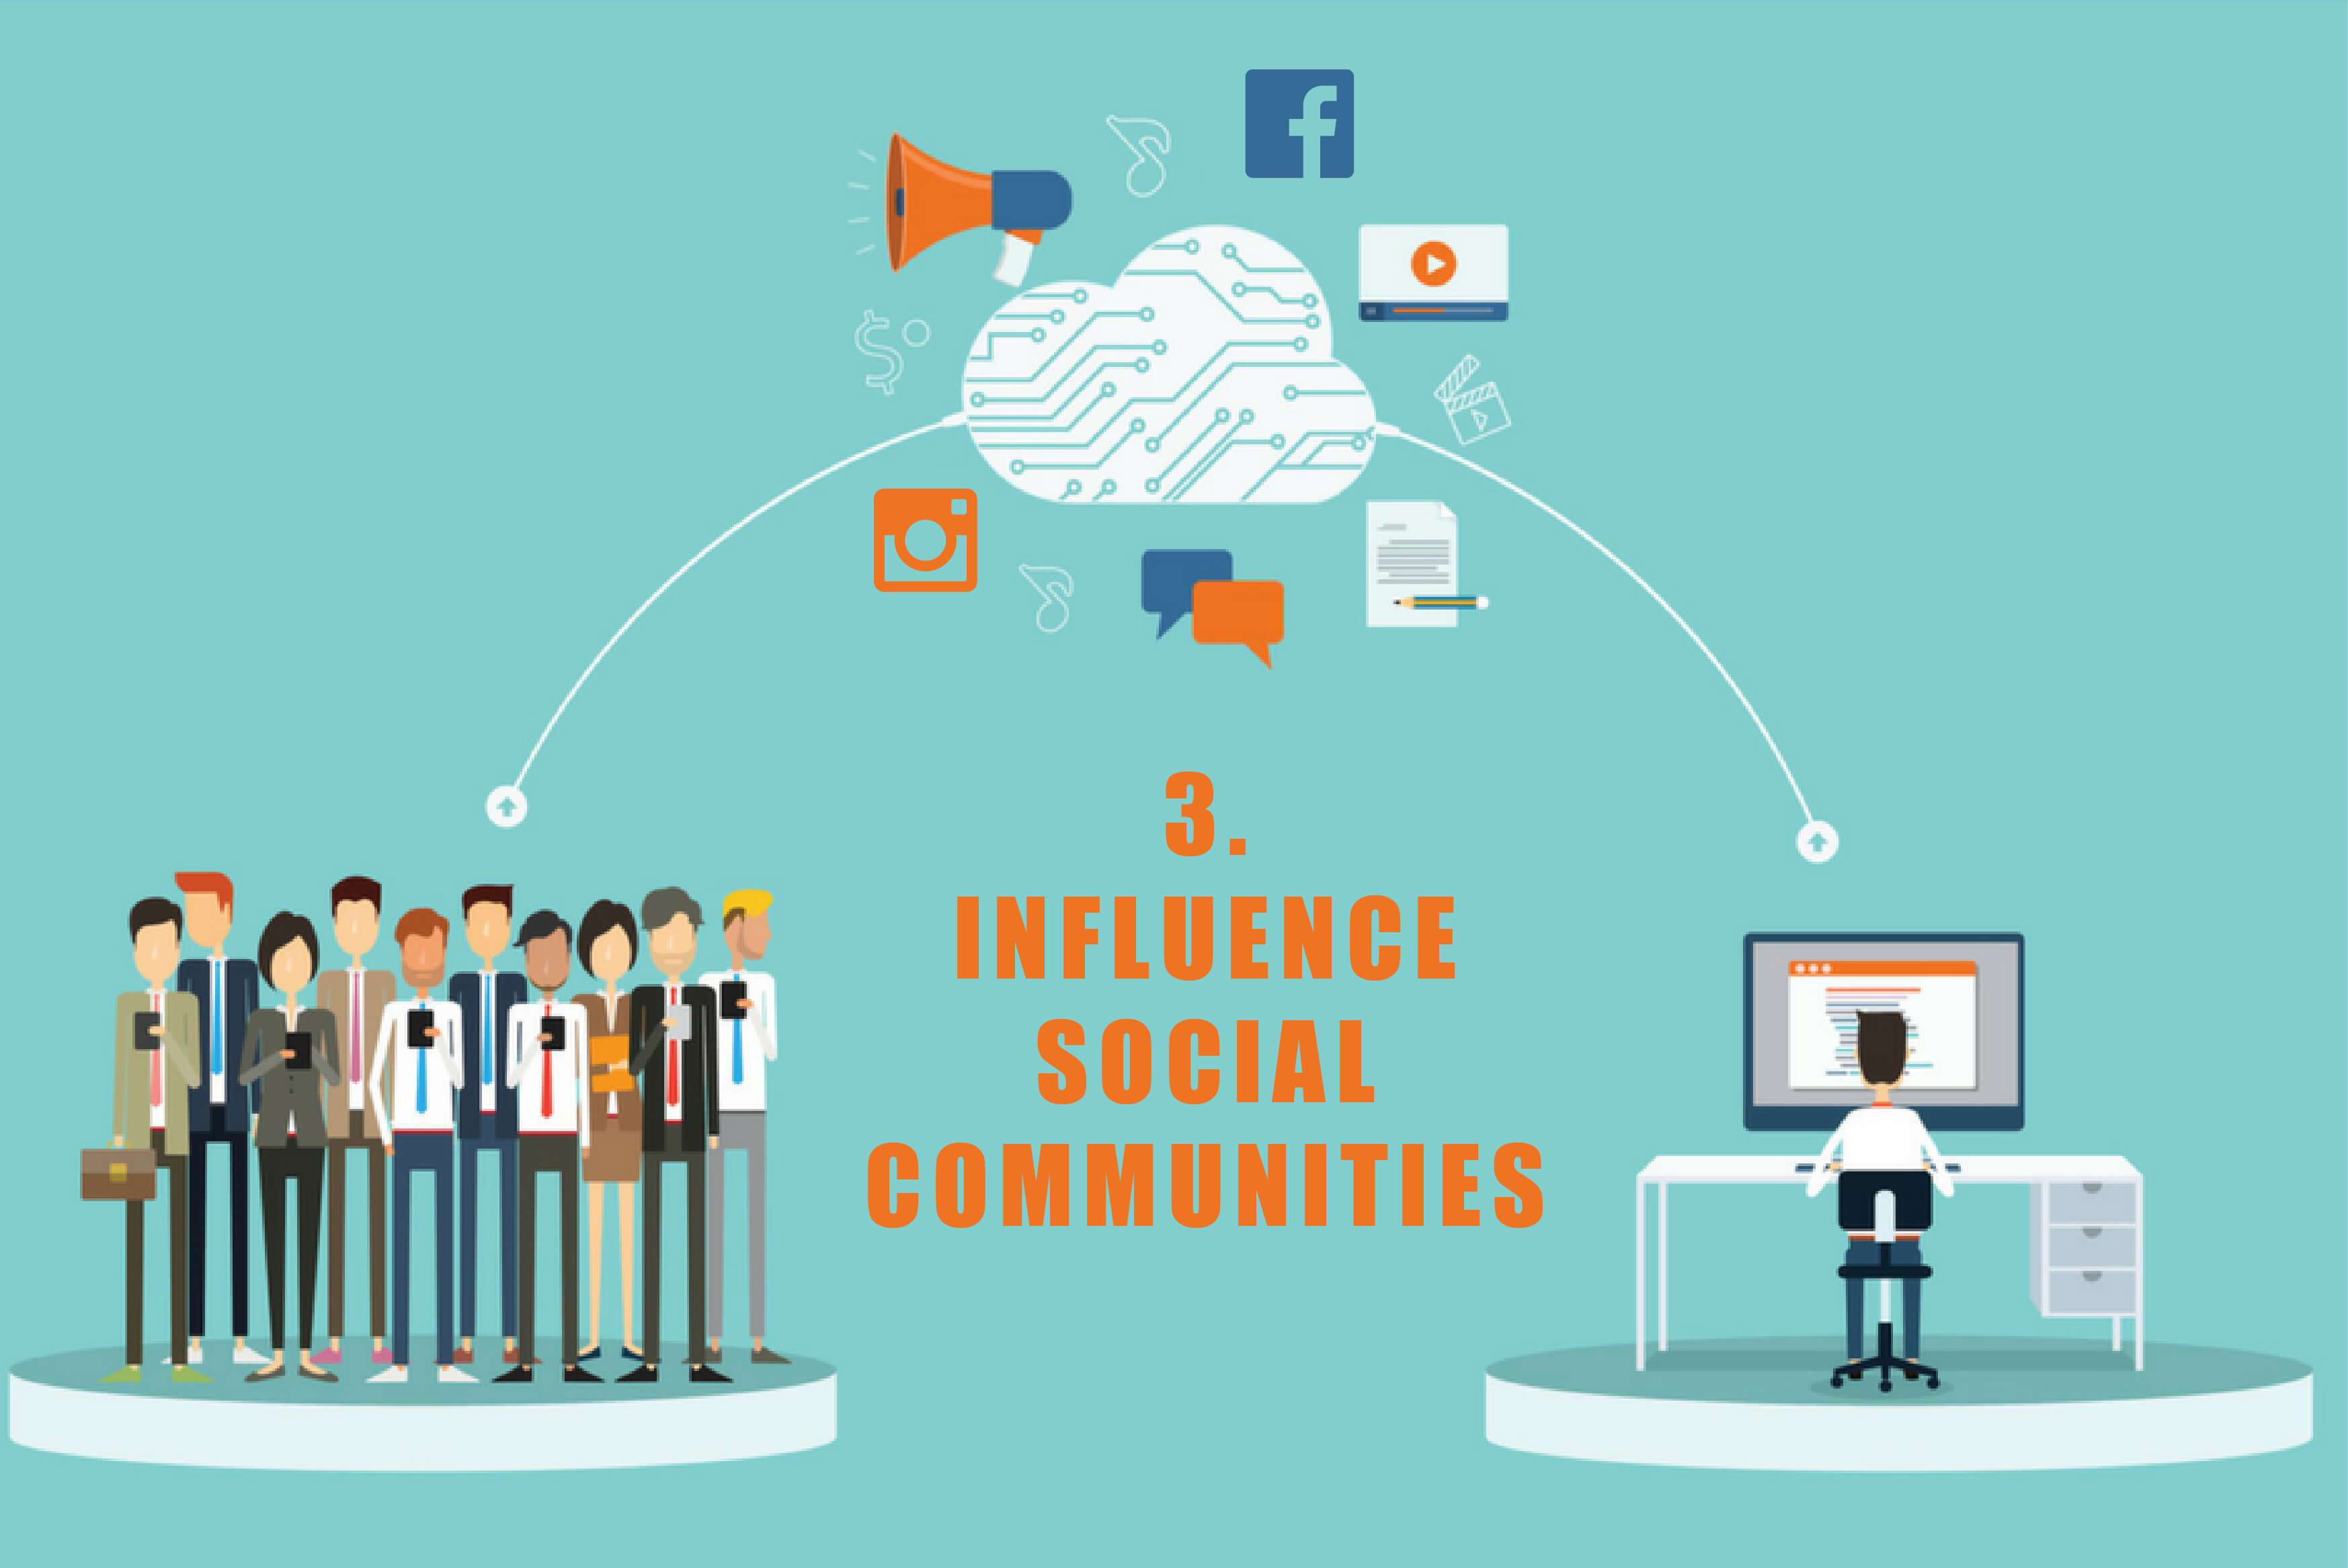 5 ways to build a digital presence for your business - Influence Communities